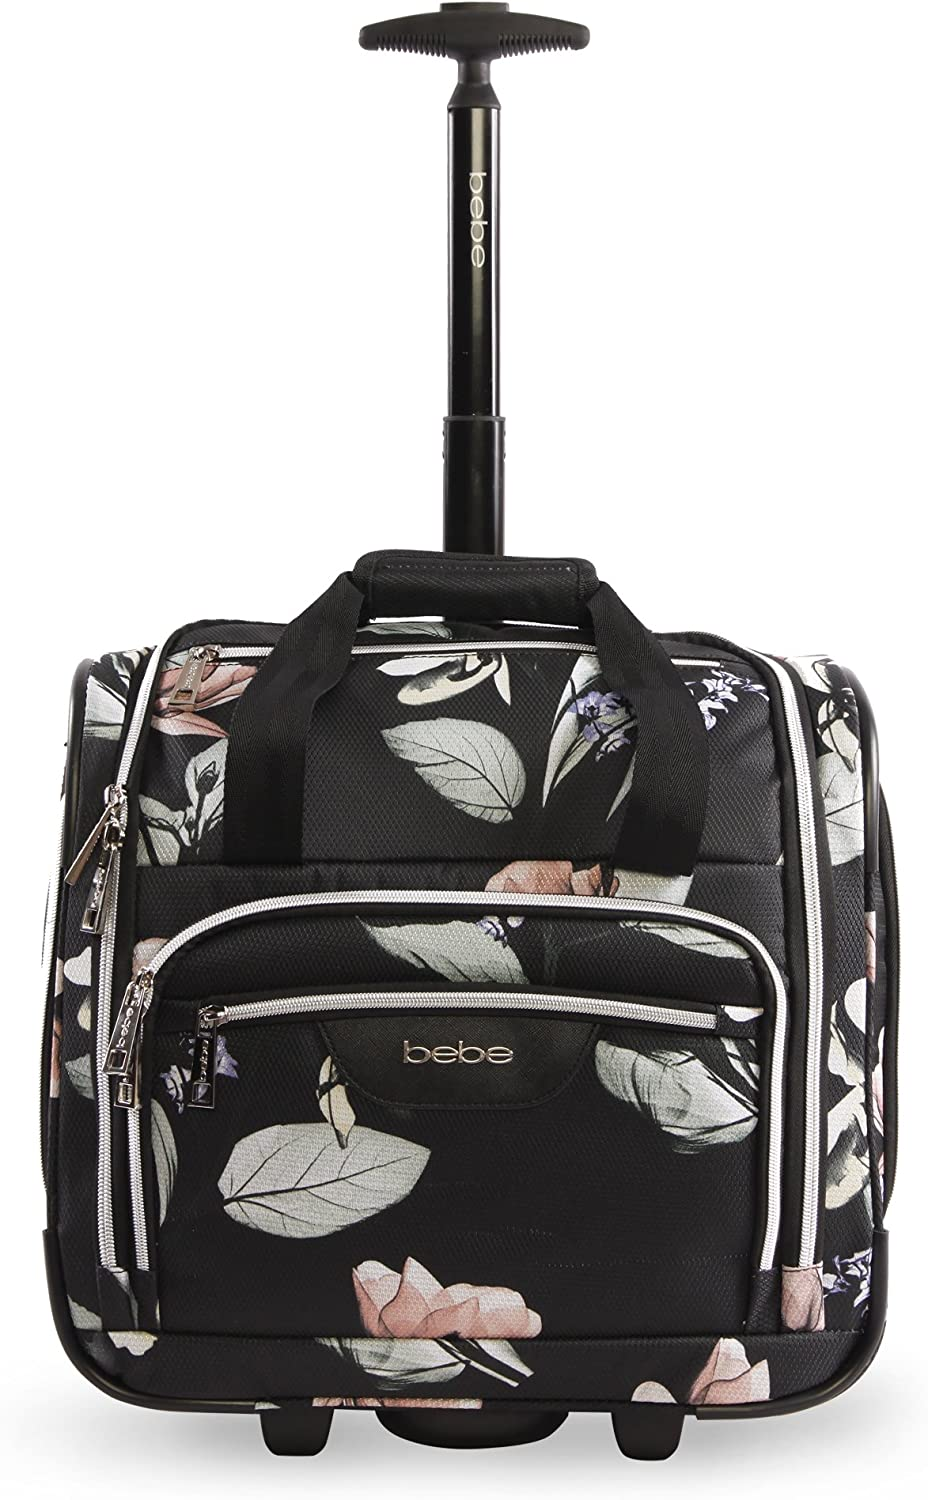 BEBE Women's Valentina-Wheeled Under The Seat Carry-on Bag, Black Floral